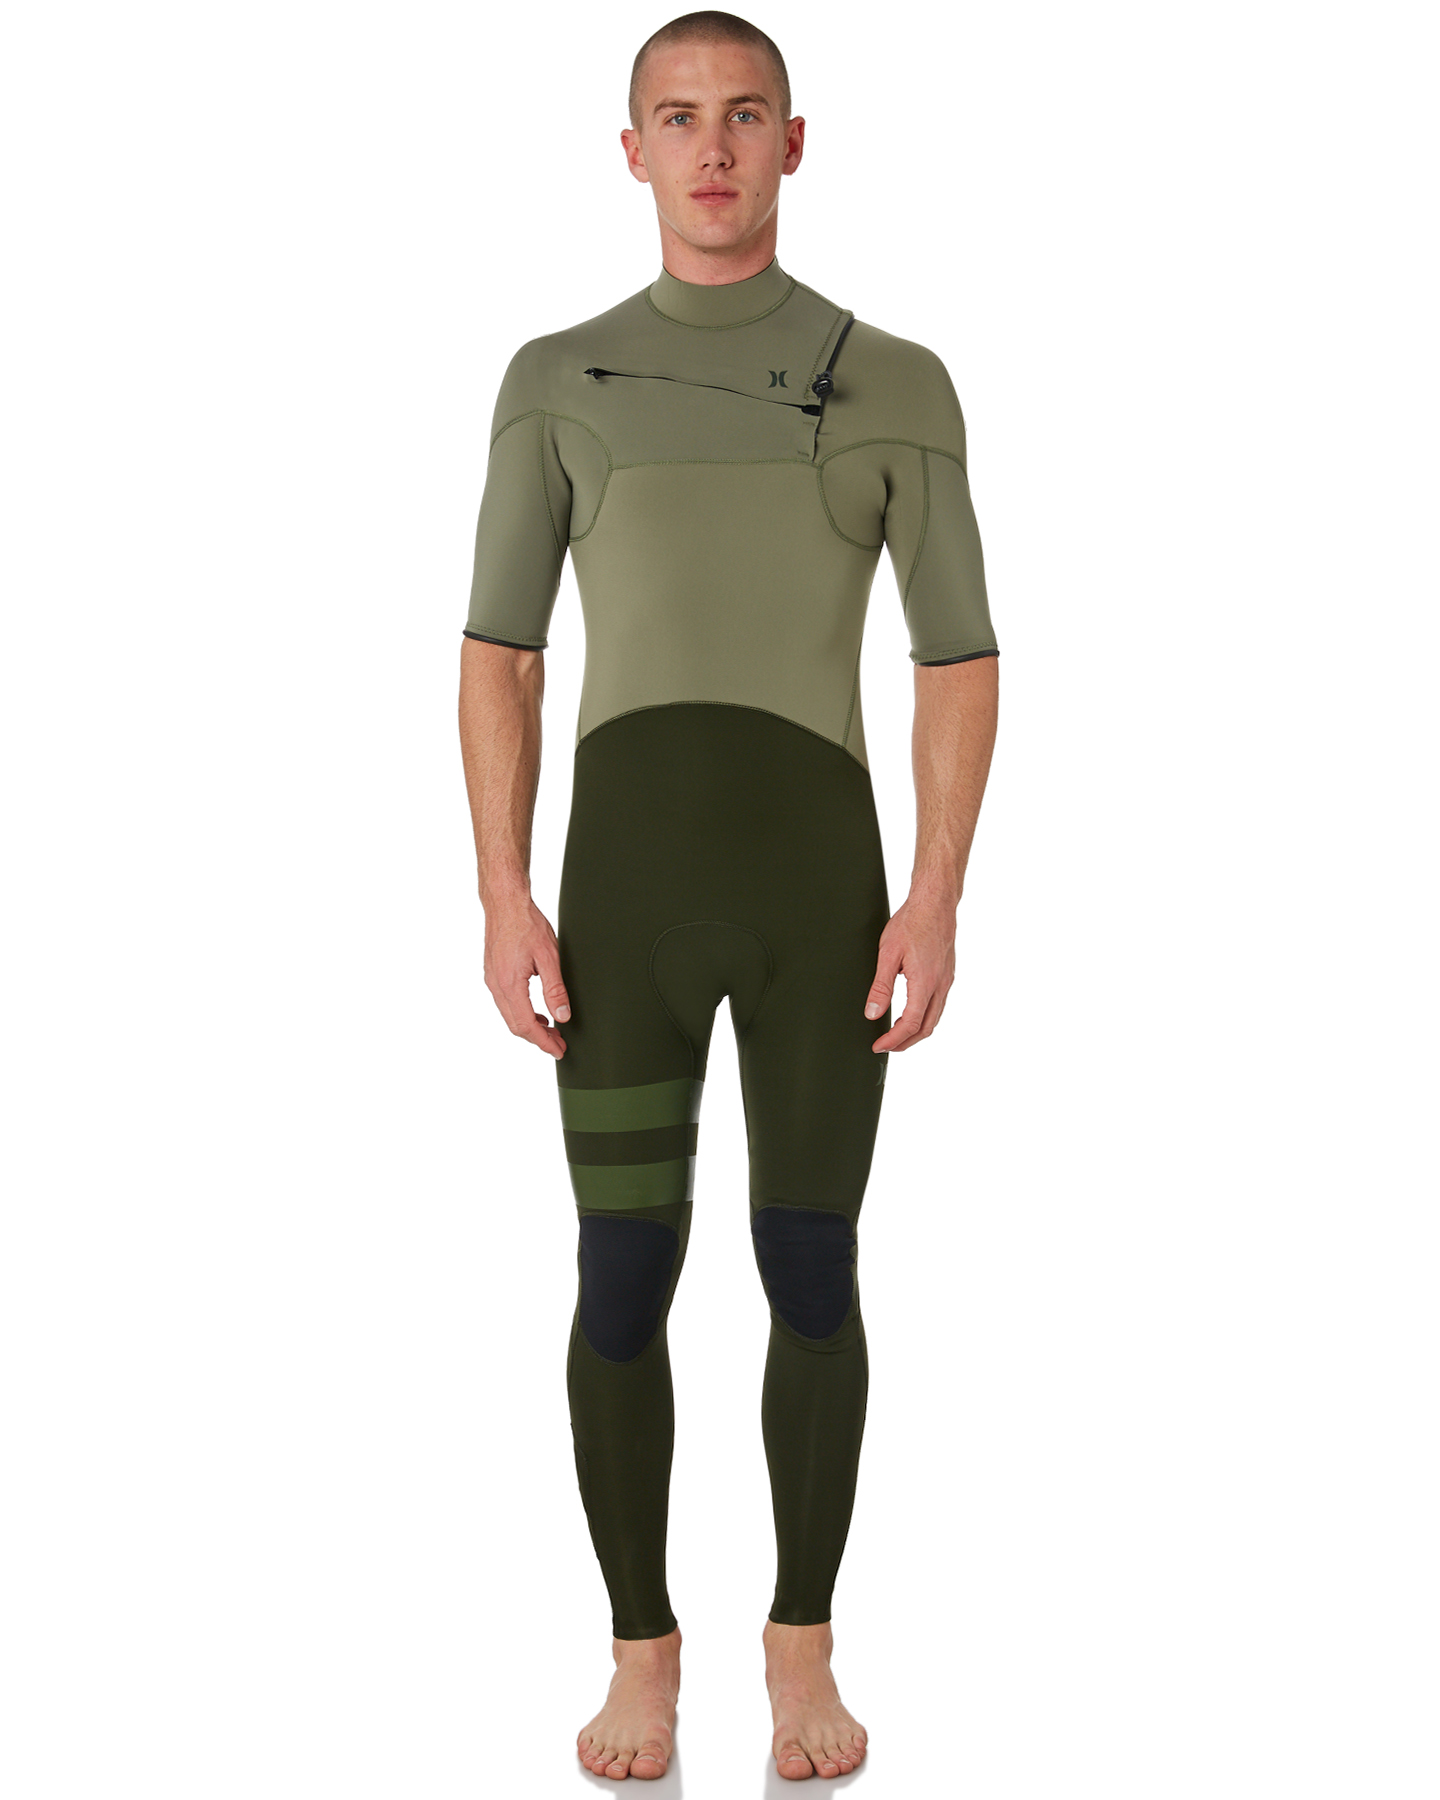 5845e56c6e Hurley Advantage Plus 2X2Mm short sleeve Steamer Wetsuit Twilight Marsh  Twilight Marsh